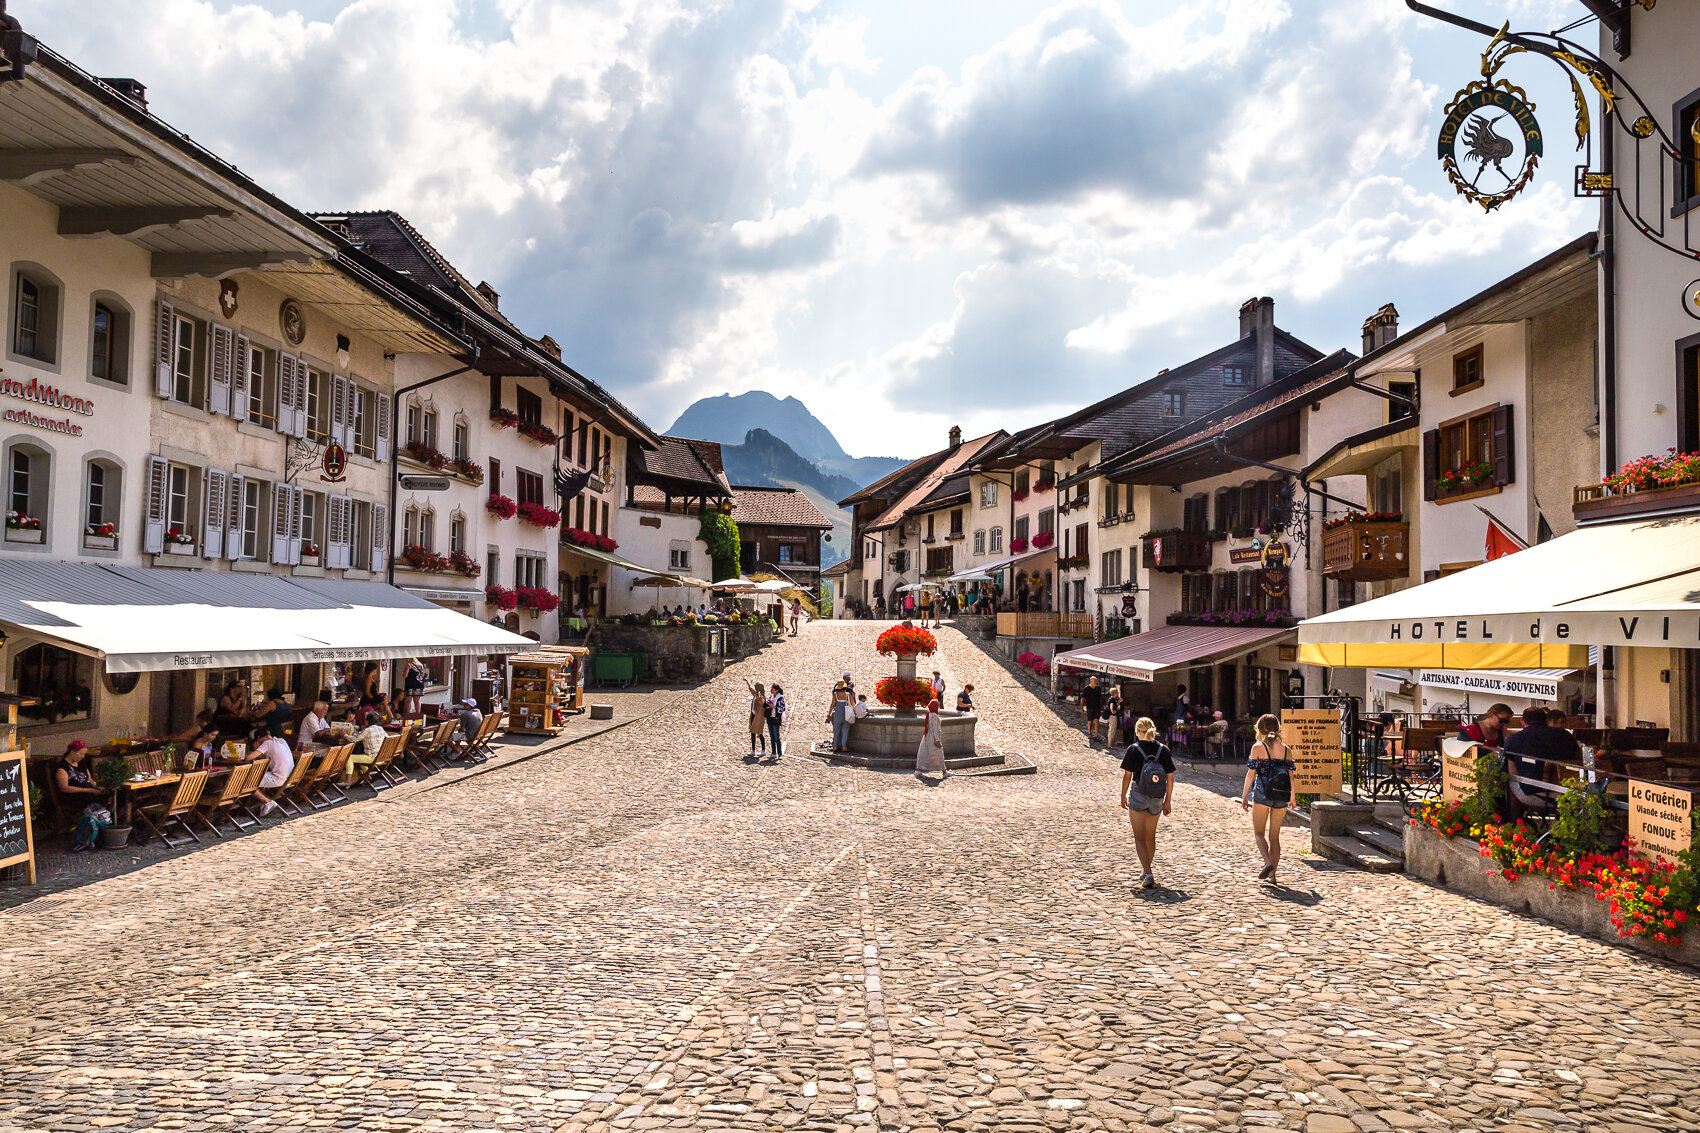 Gruyere..so pretty in all its flowers, cobblestone and touristic serenity.